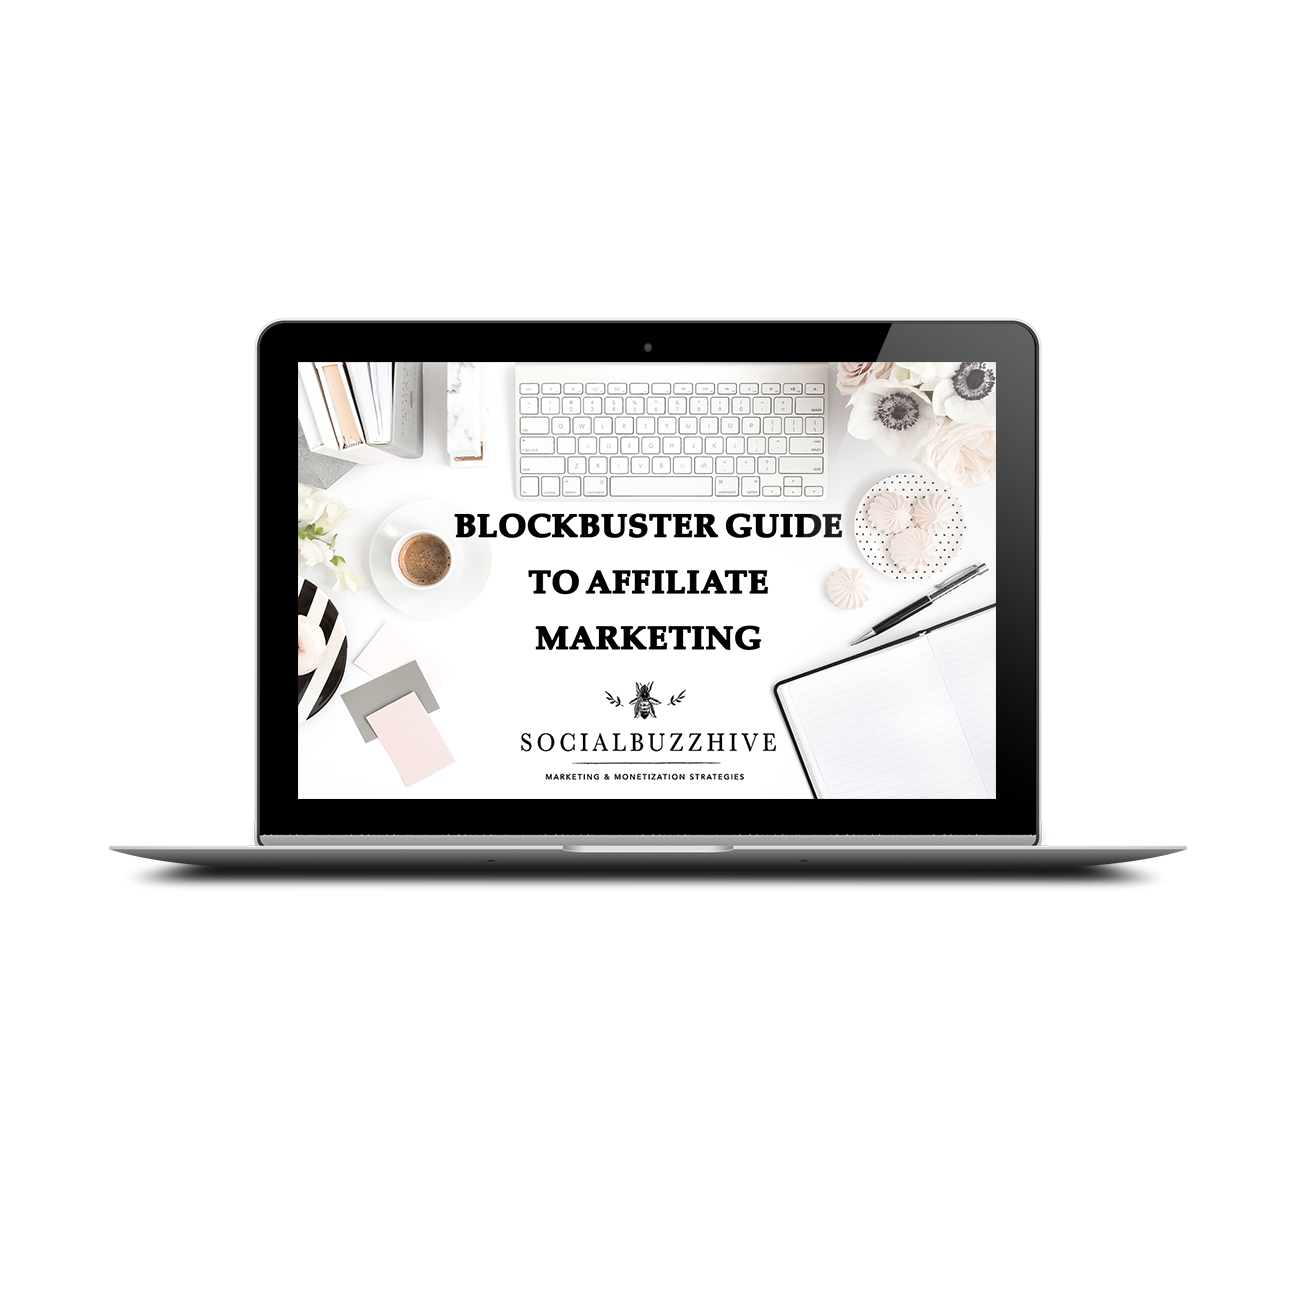 blockbuster guide to affiliate marketing